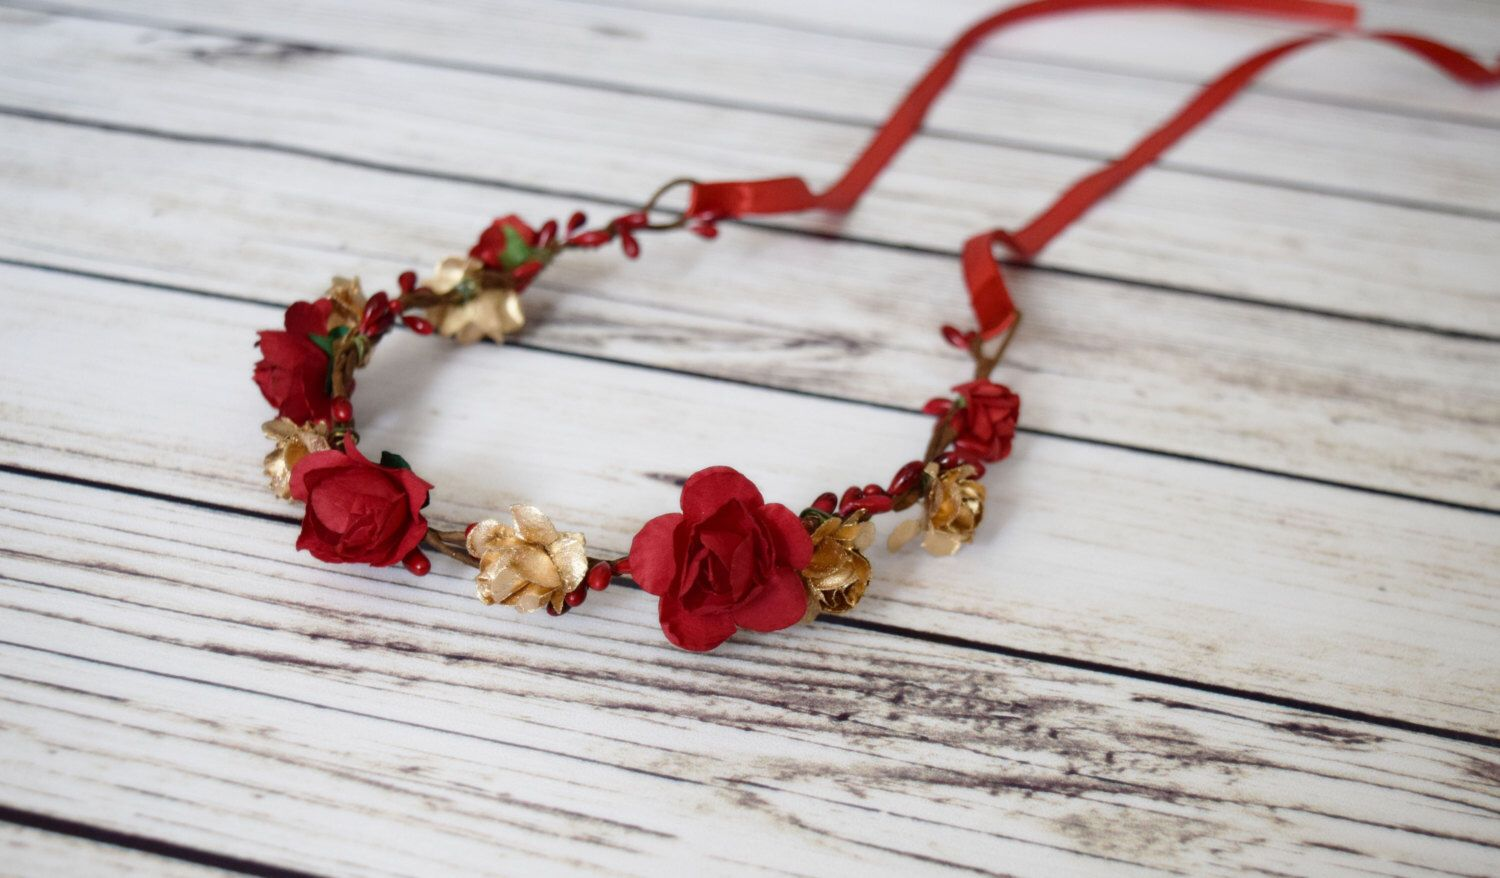 BIG SALE Hand Crafted Christmas Flower Crown - Gold and Red Flower Crown - Red Rose Flower Crown - Medieval Flower Crown - Renaissance Flowe by KaticesBowtique on Etsy https://www.etsy.com/listing/461741014/big-sale-hand-crafted-christmas-flower